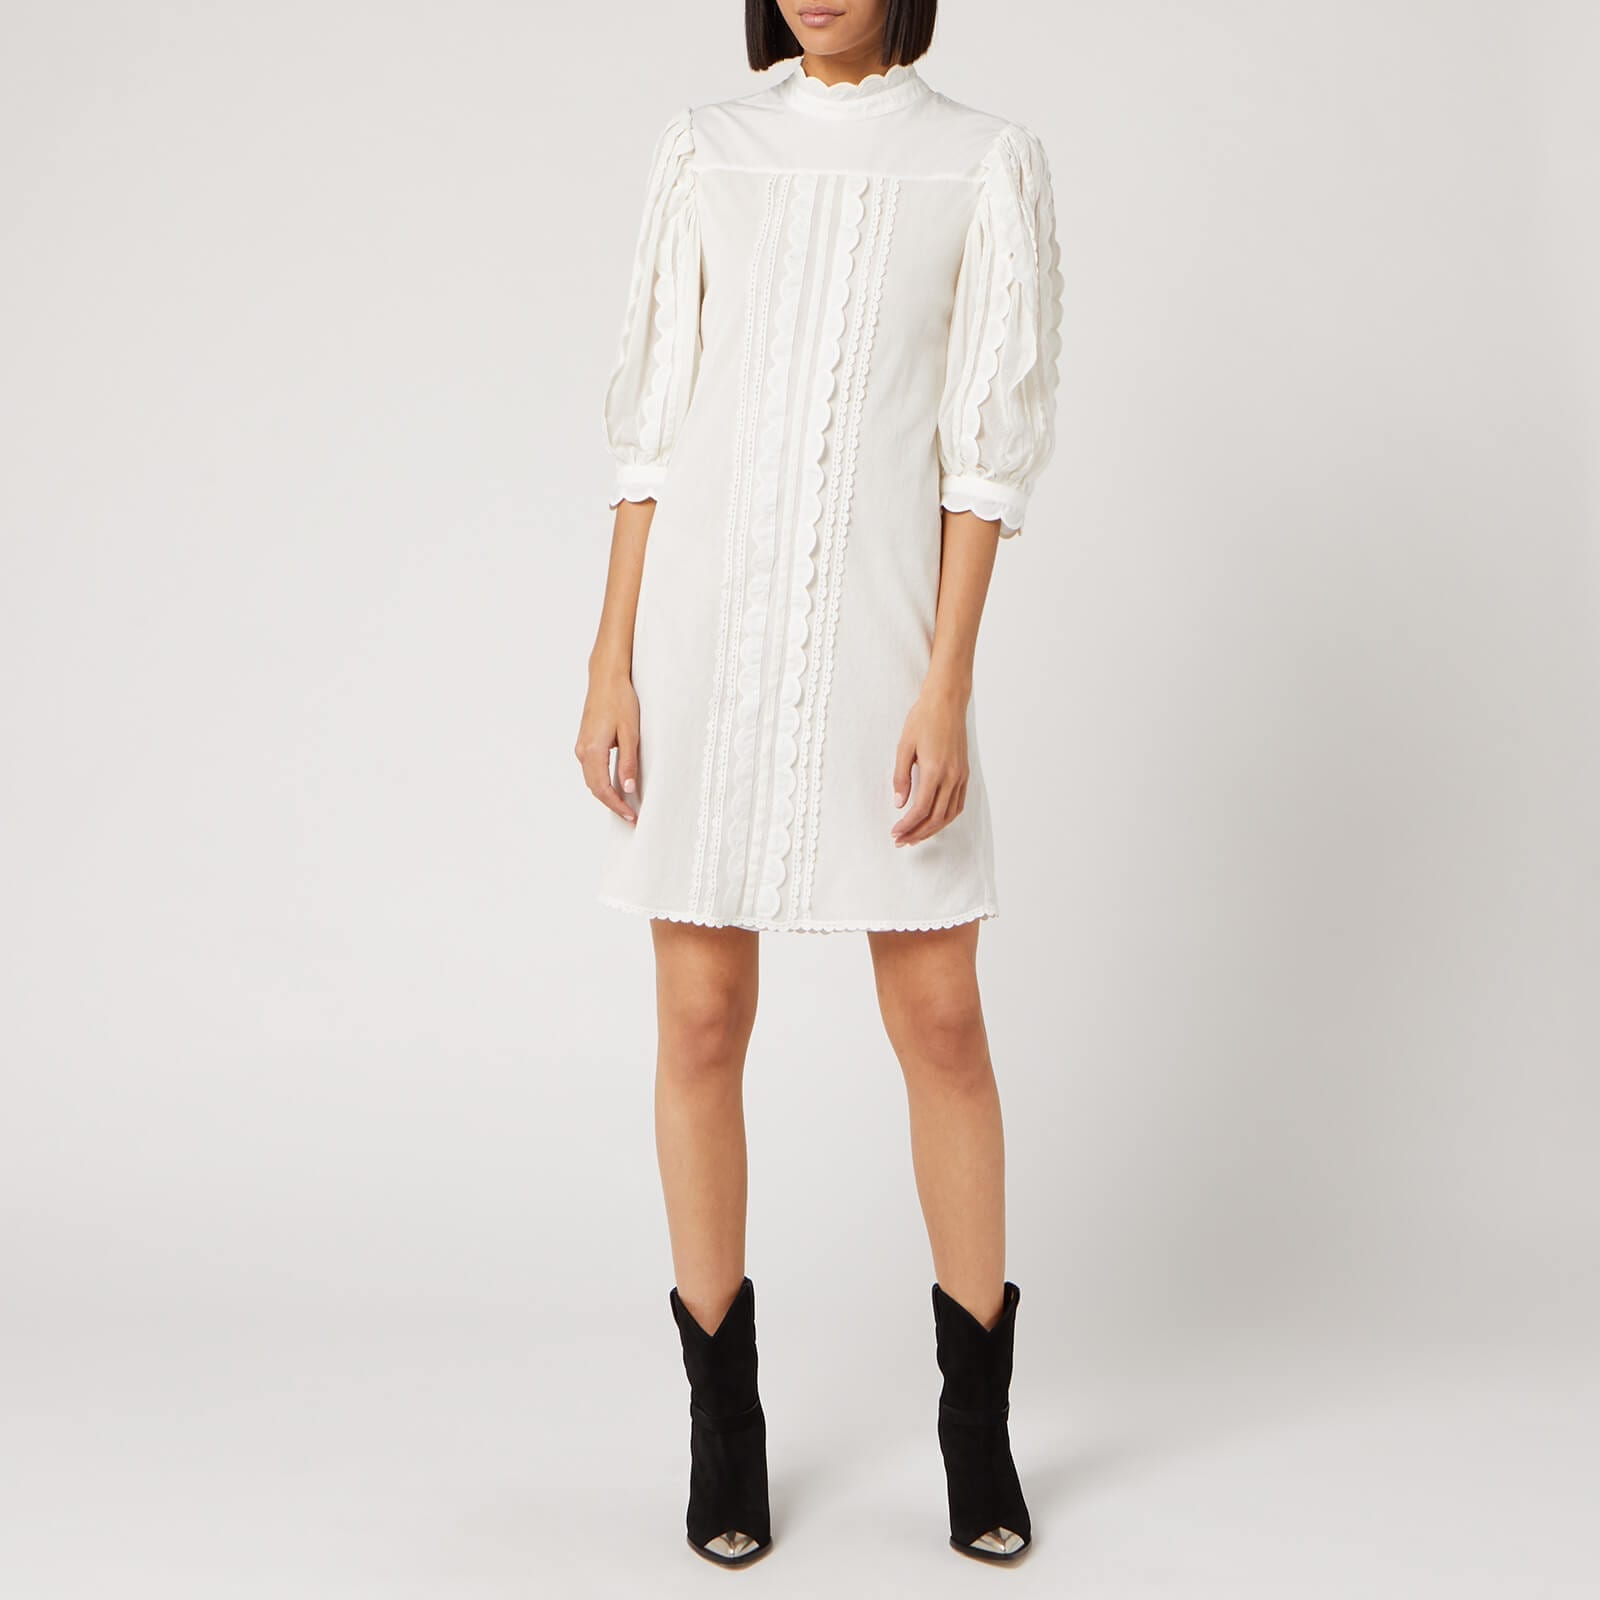 SEE BY CHLOÉ Women's Embroidered Dress